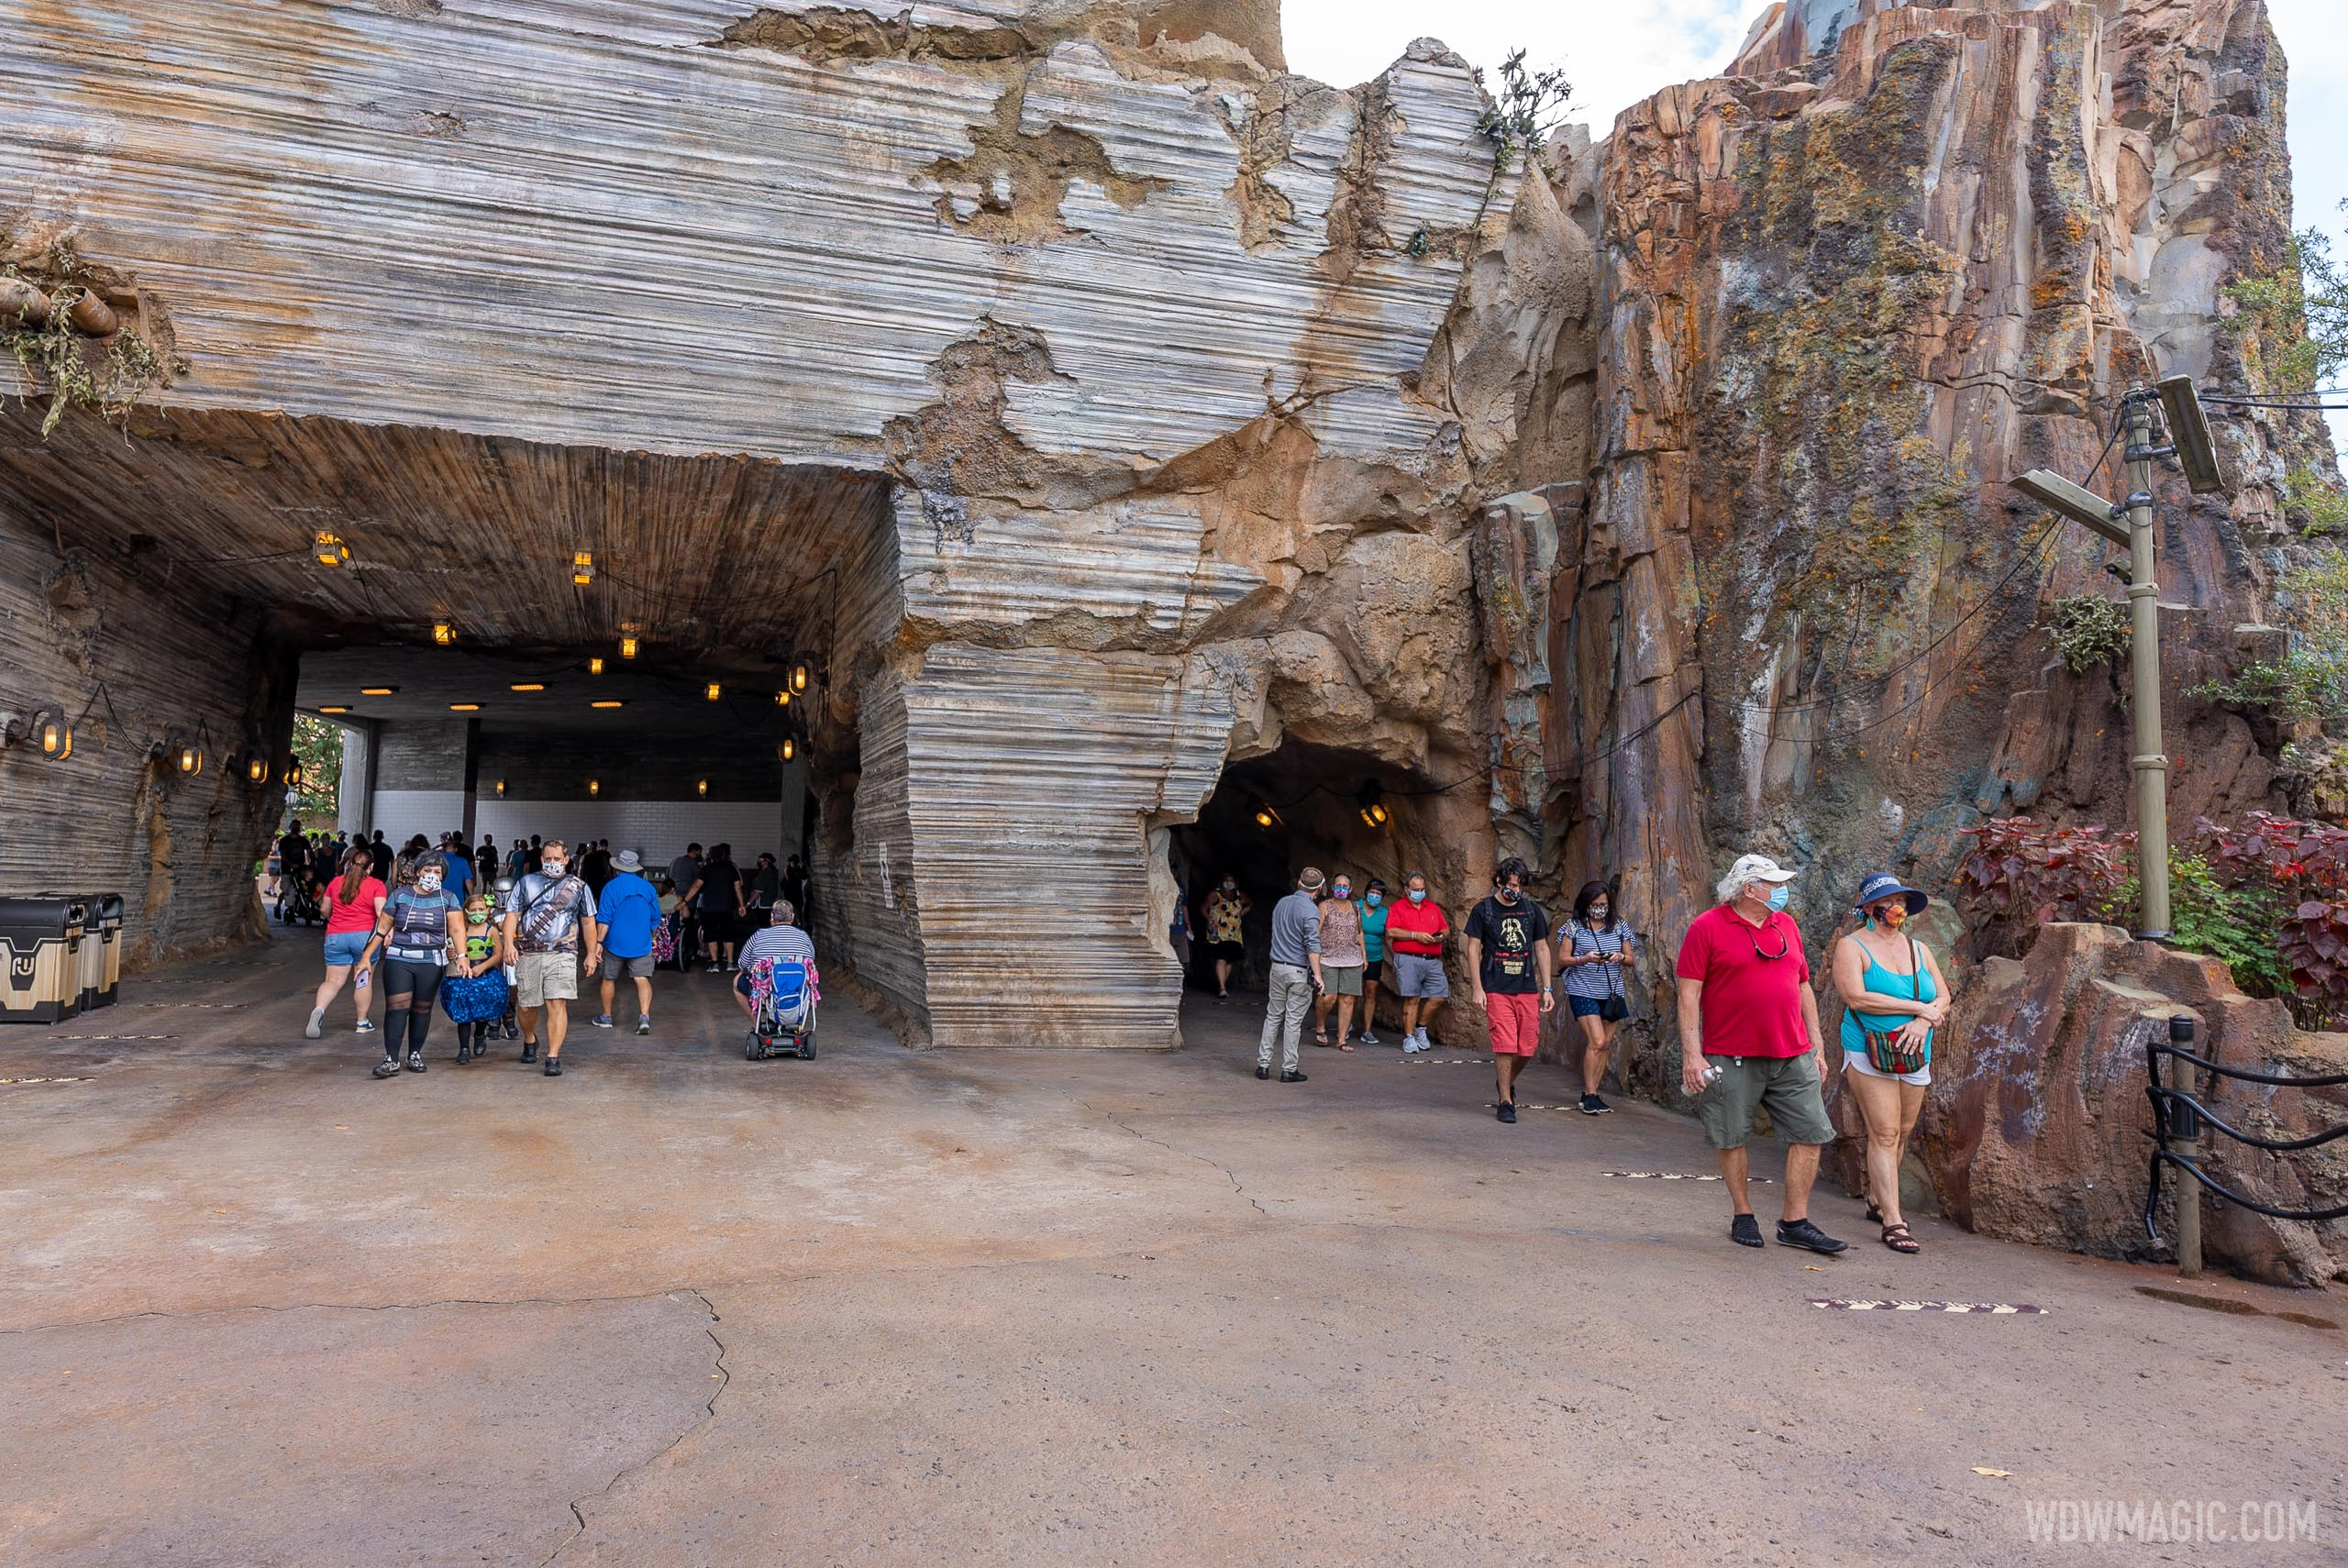 The lines start position varies but is often outside of Galaxy's Edge